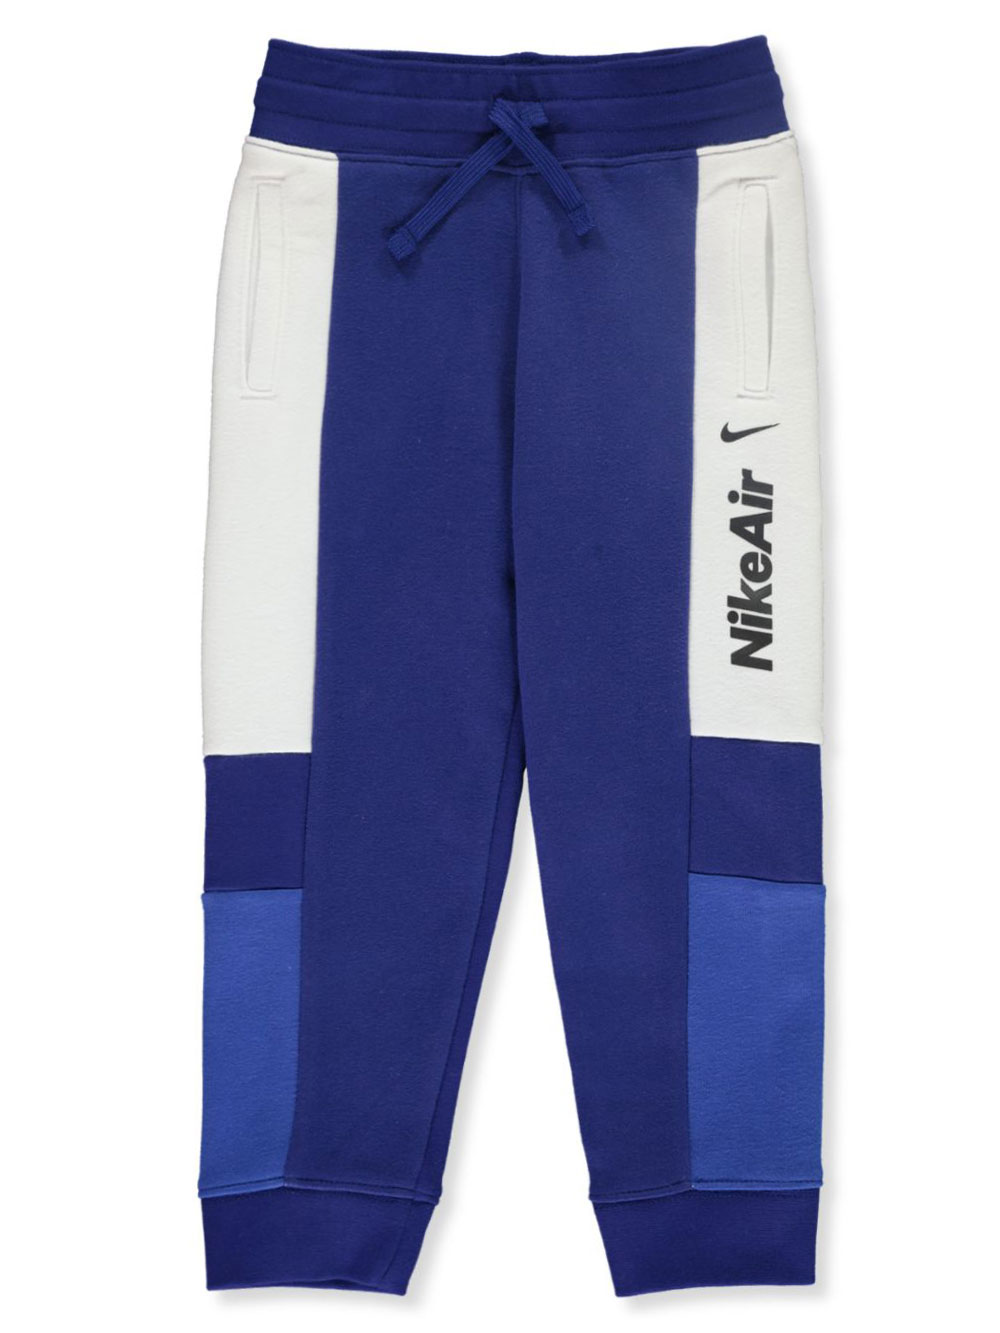 Boys Royal Blue Sweatpants